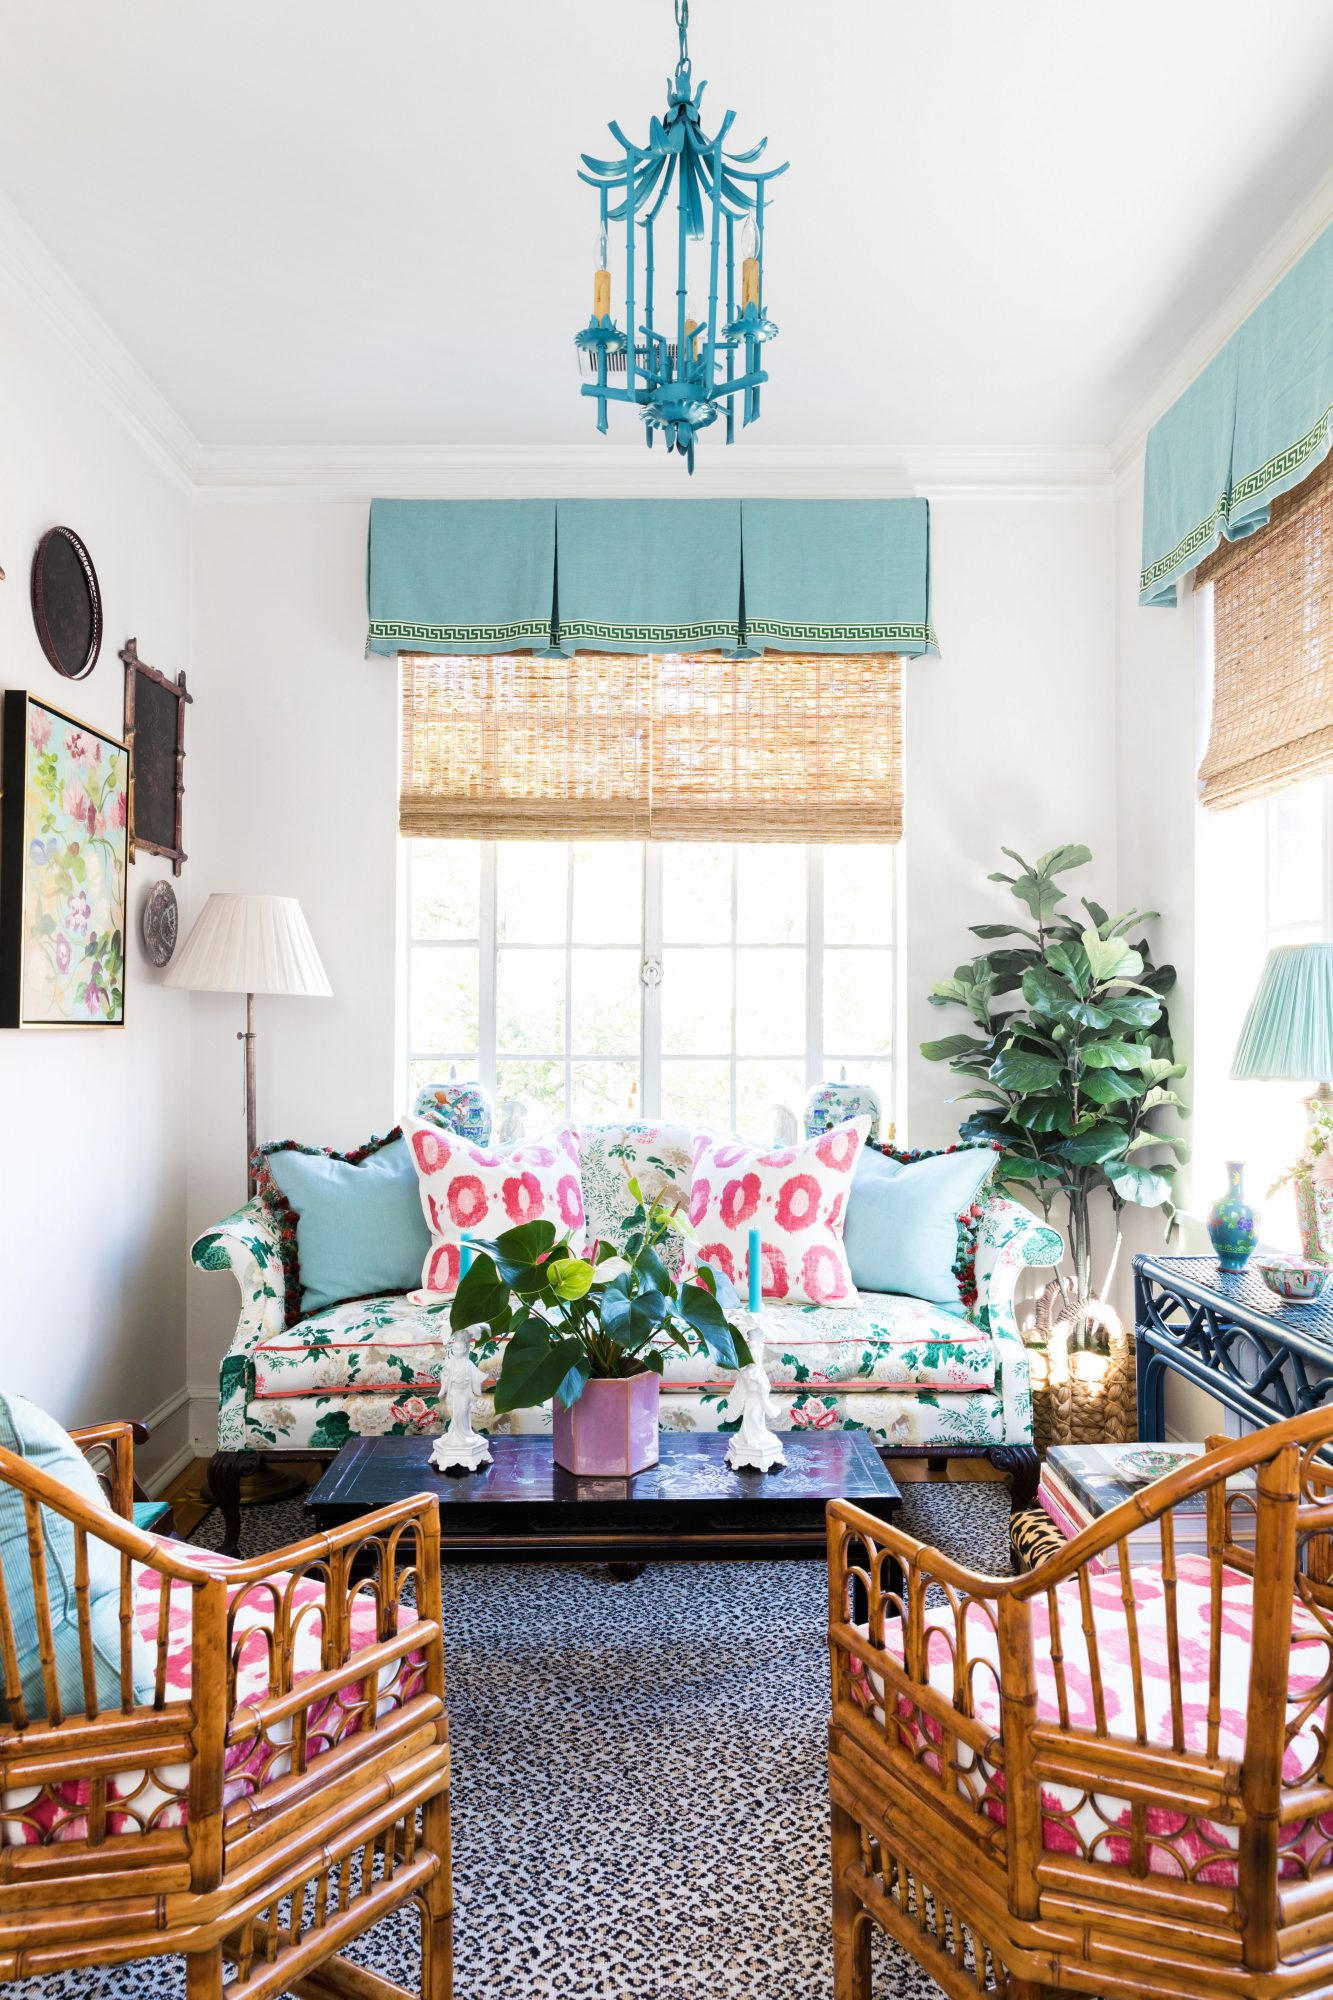 Bright Sunroom with Teal and Pink Accents